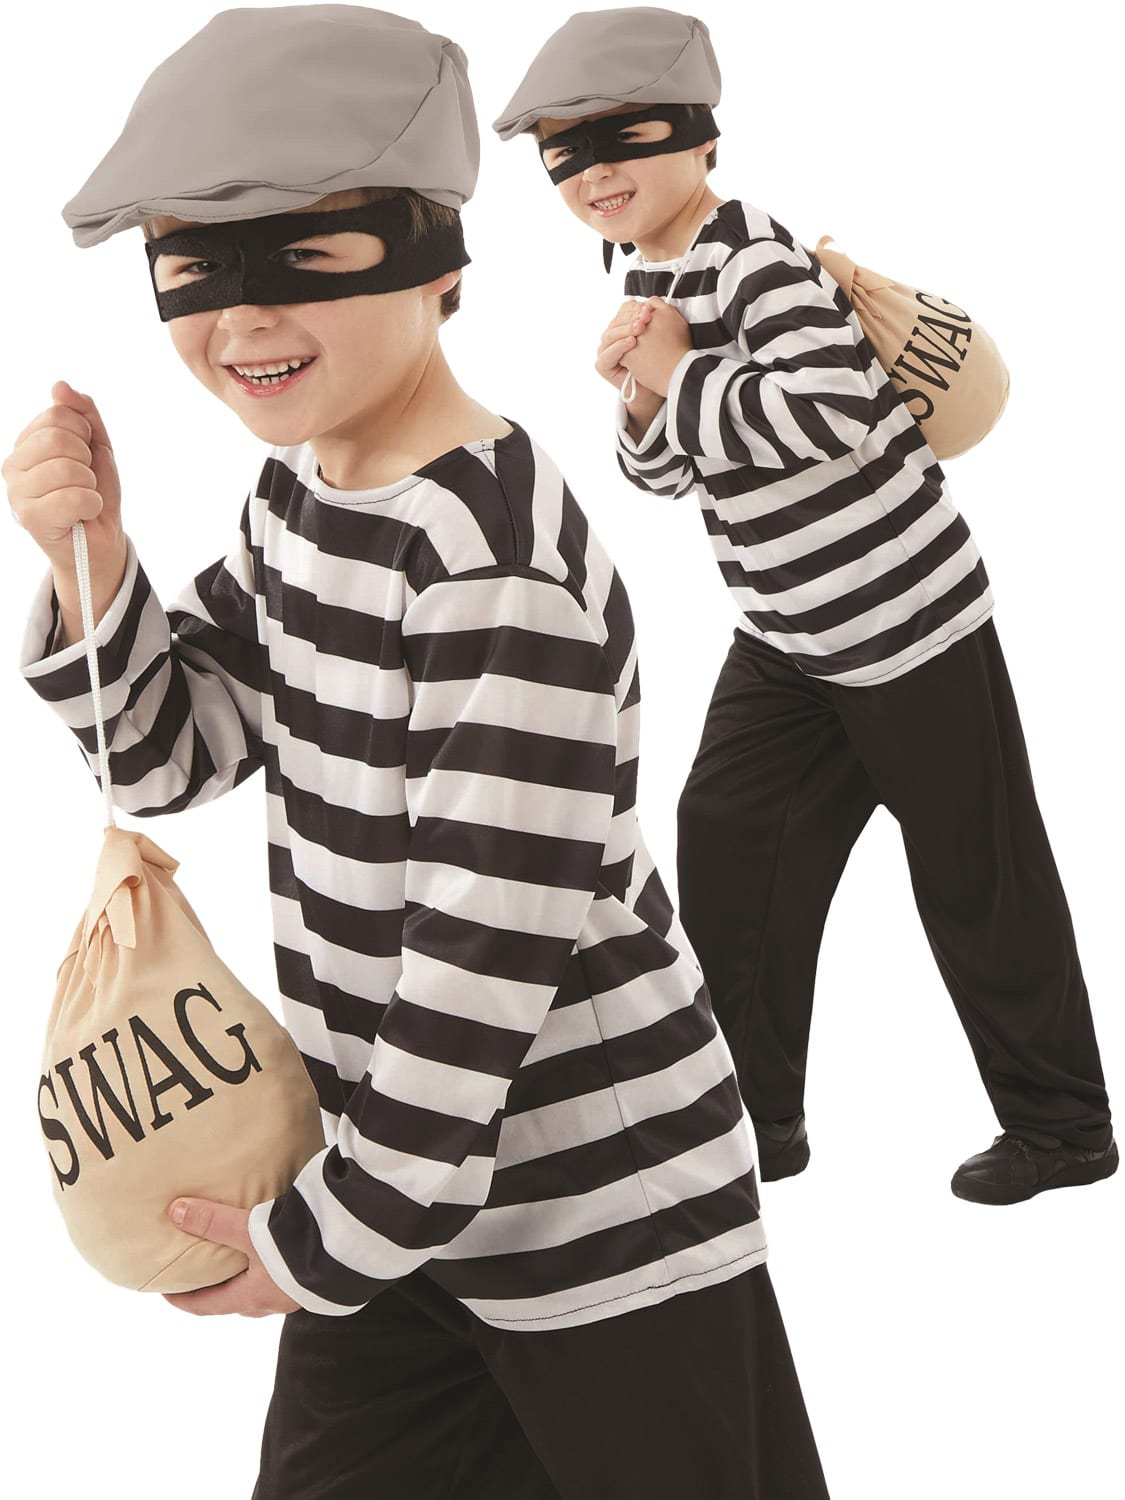 Burglar Children's Fancy Dress Costume